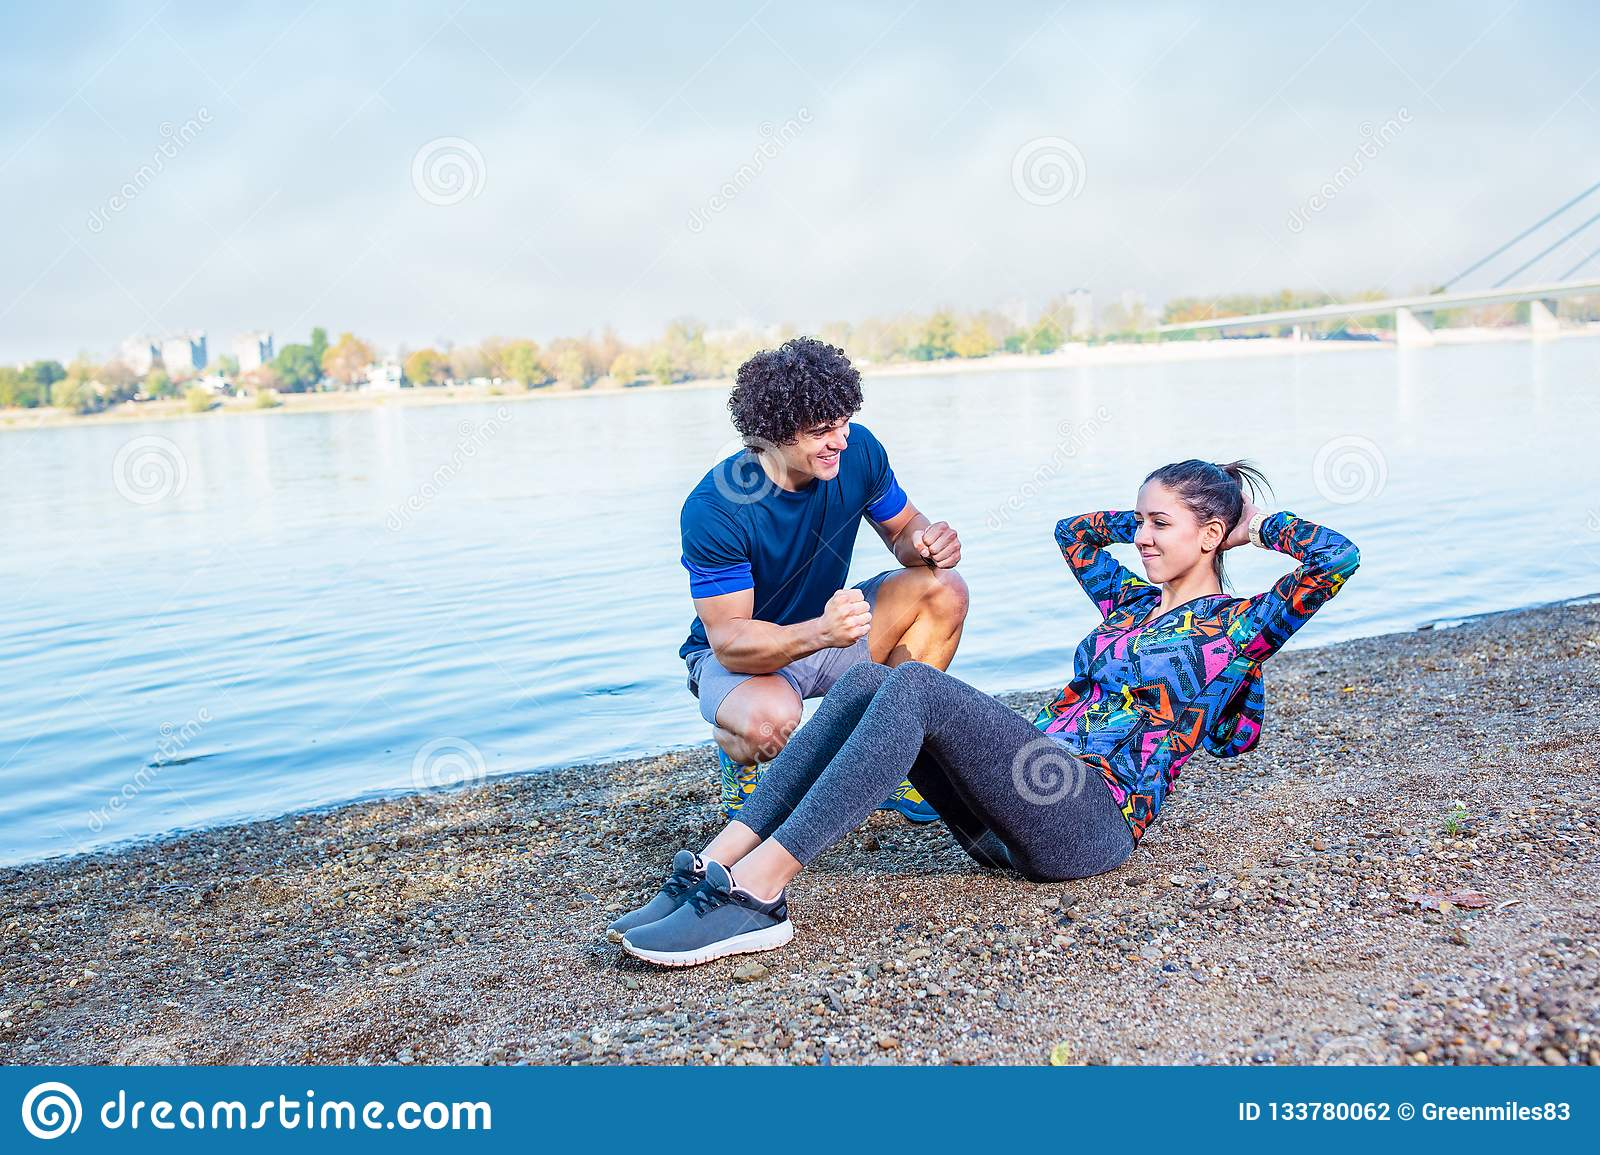 You can do it - fitness Trainer assisting young woman doing sit